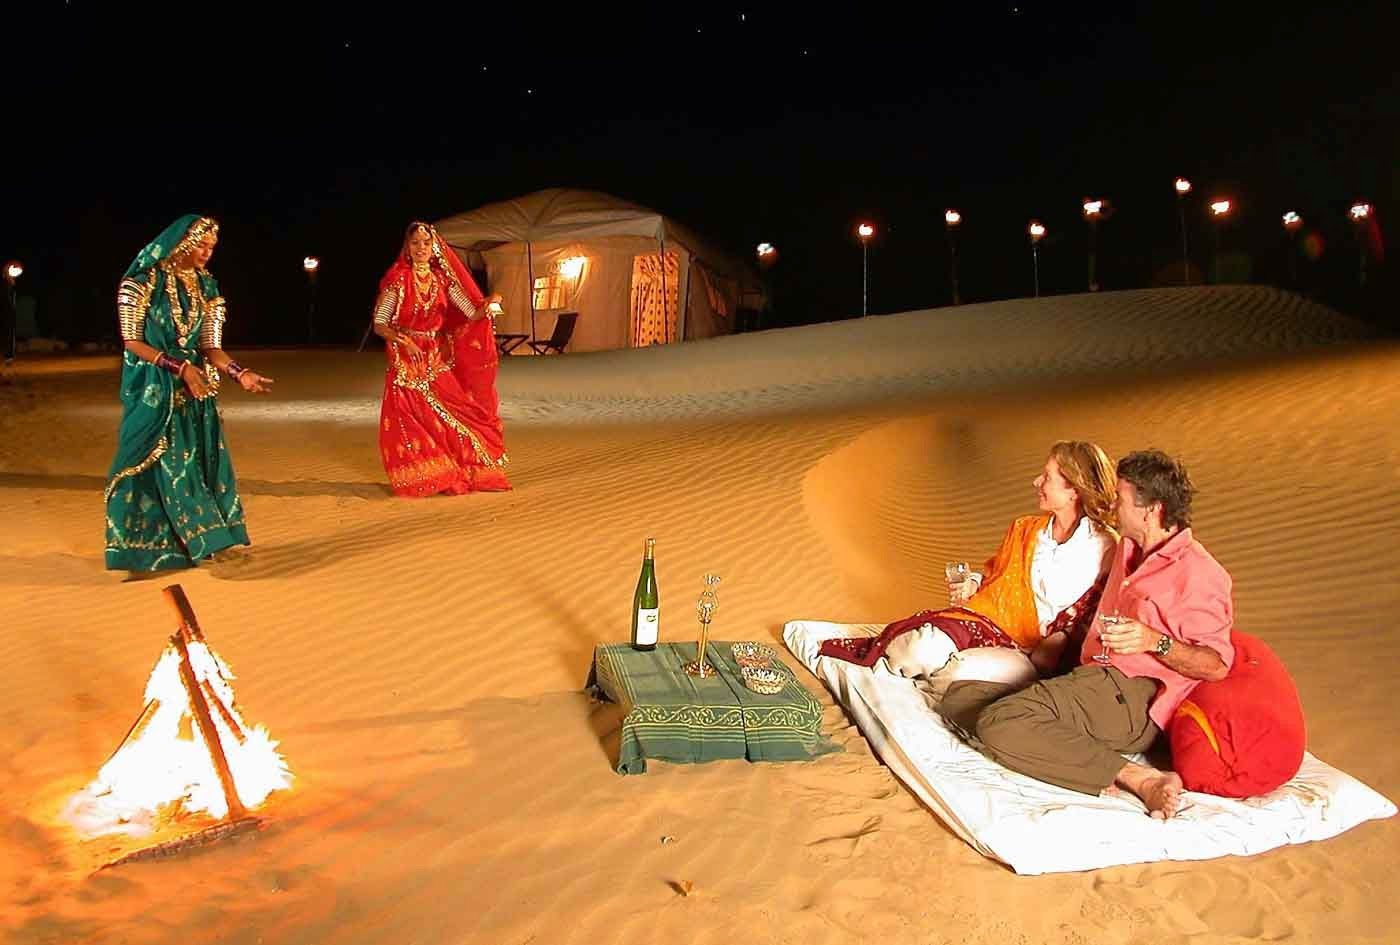 Sam Desert Nights Jaisalmer